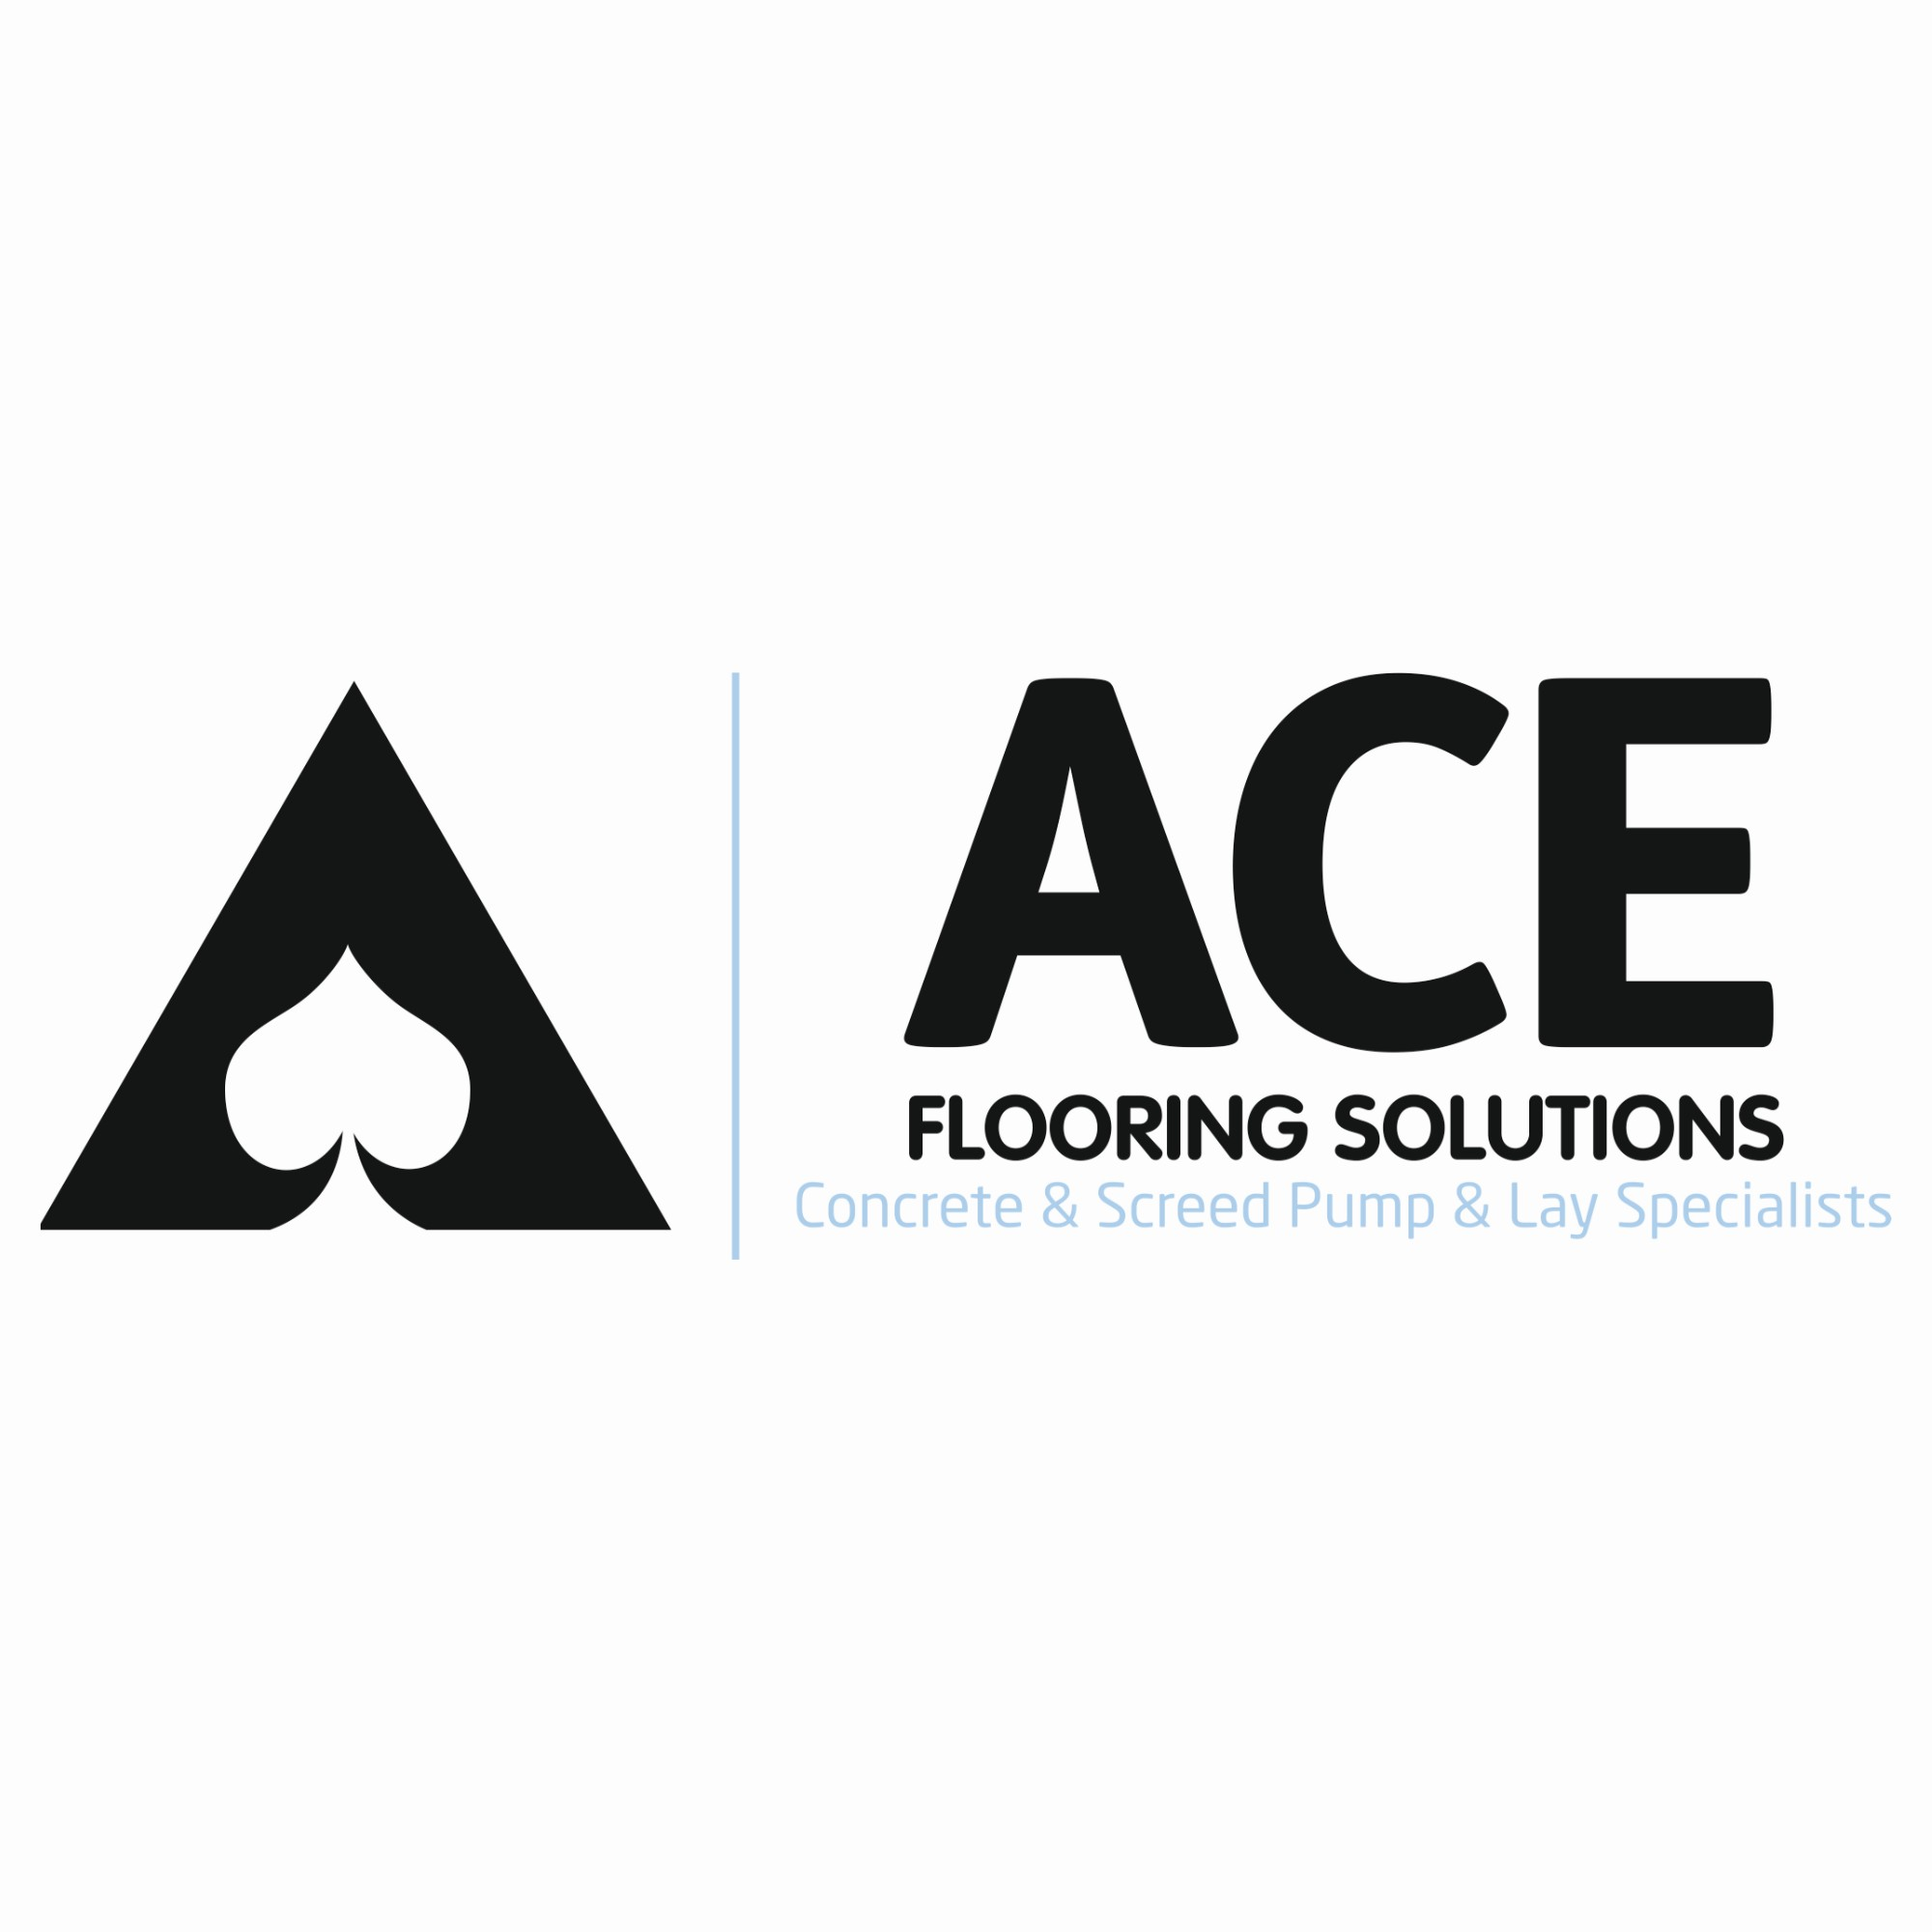 Logo of Ace Concrete Flooring Solutions Floorcoverings - Retail In Stockton On Tees, Cleveland